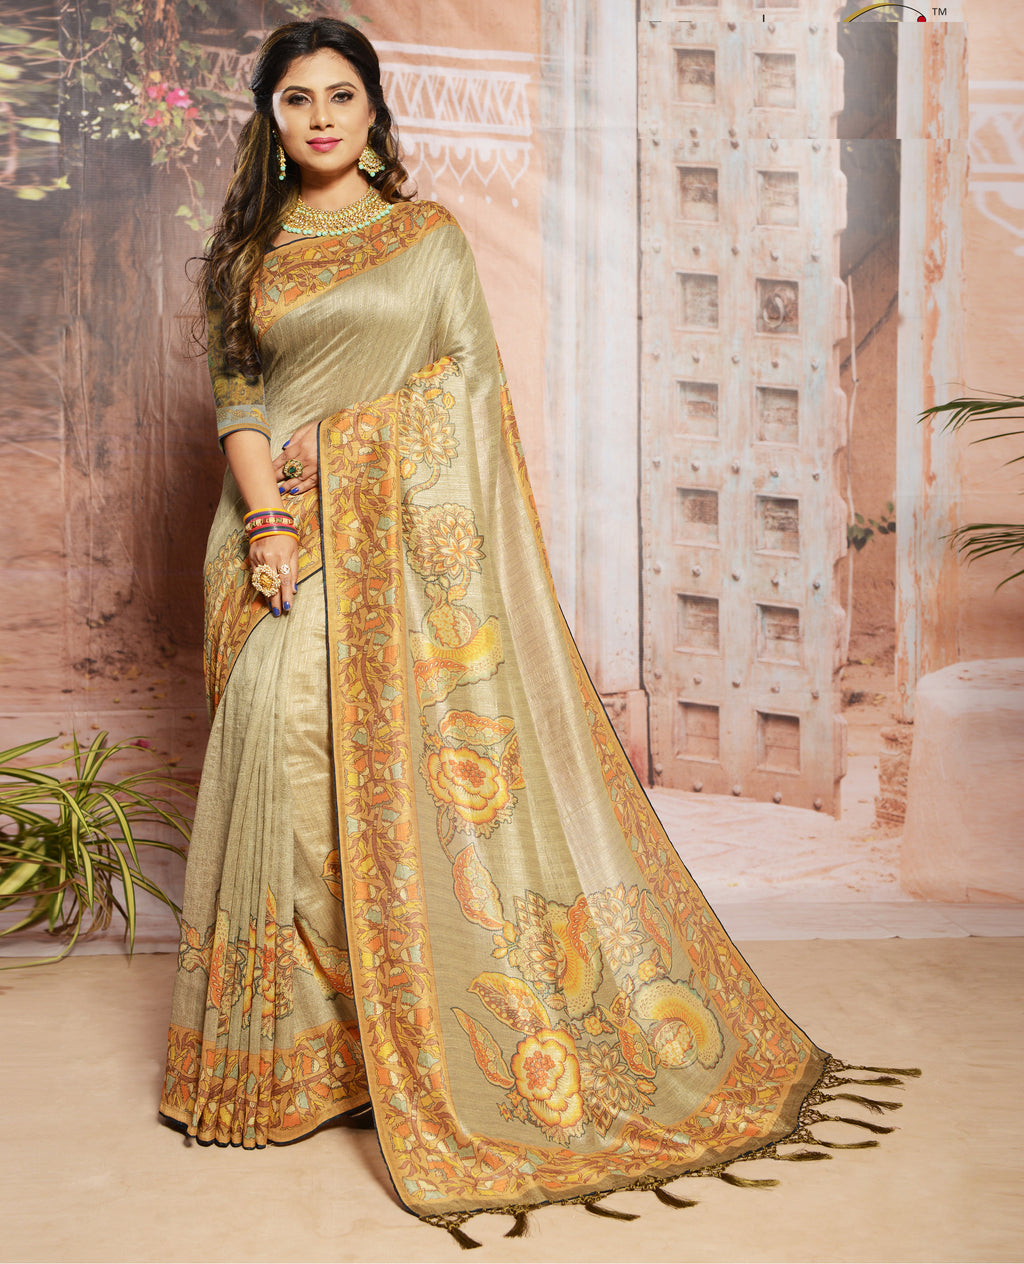 Light Coffee Color Raw Silk Digital Print Festive Sarees NYF-7874